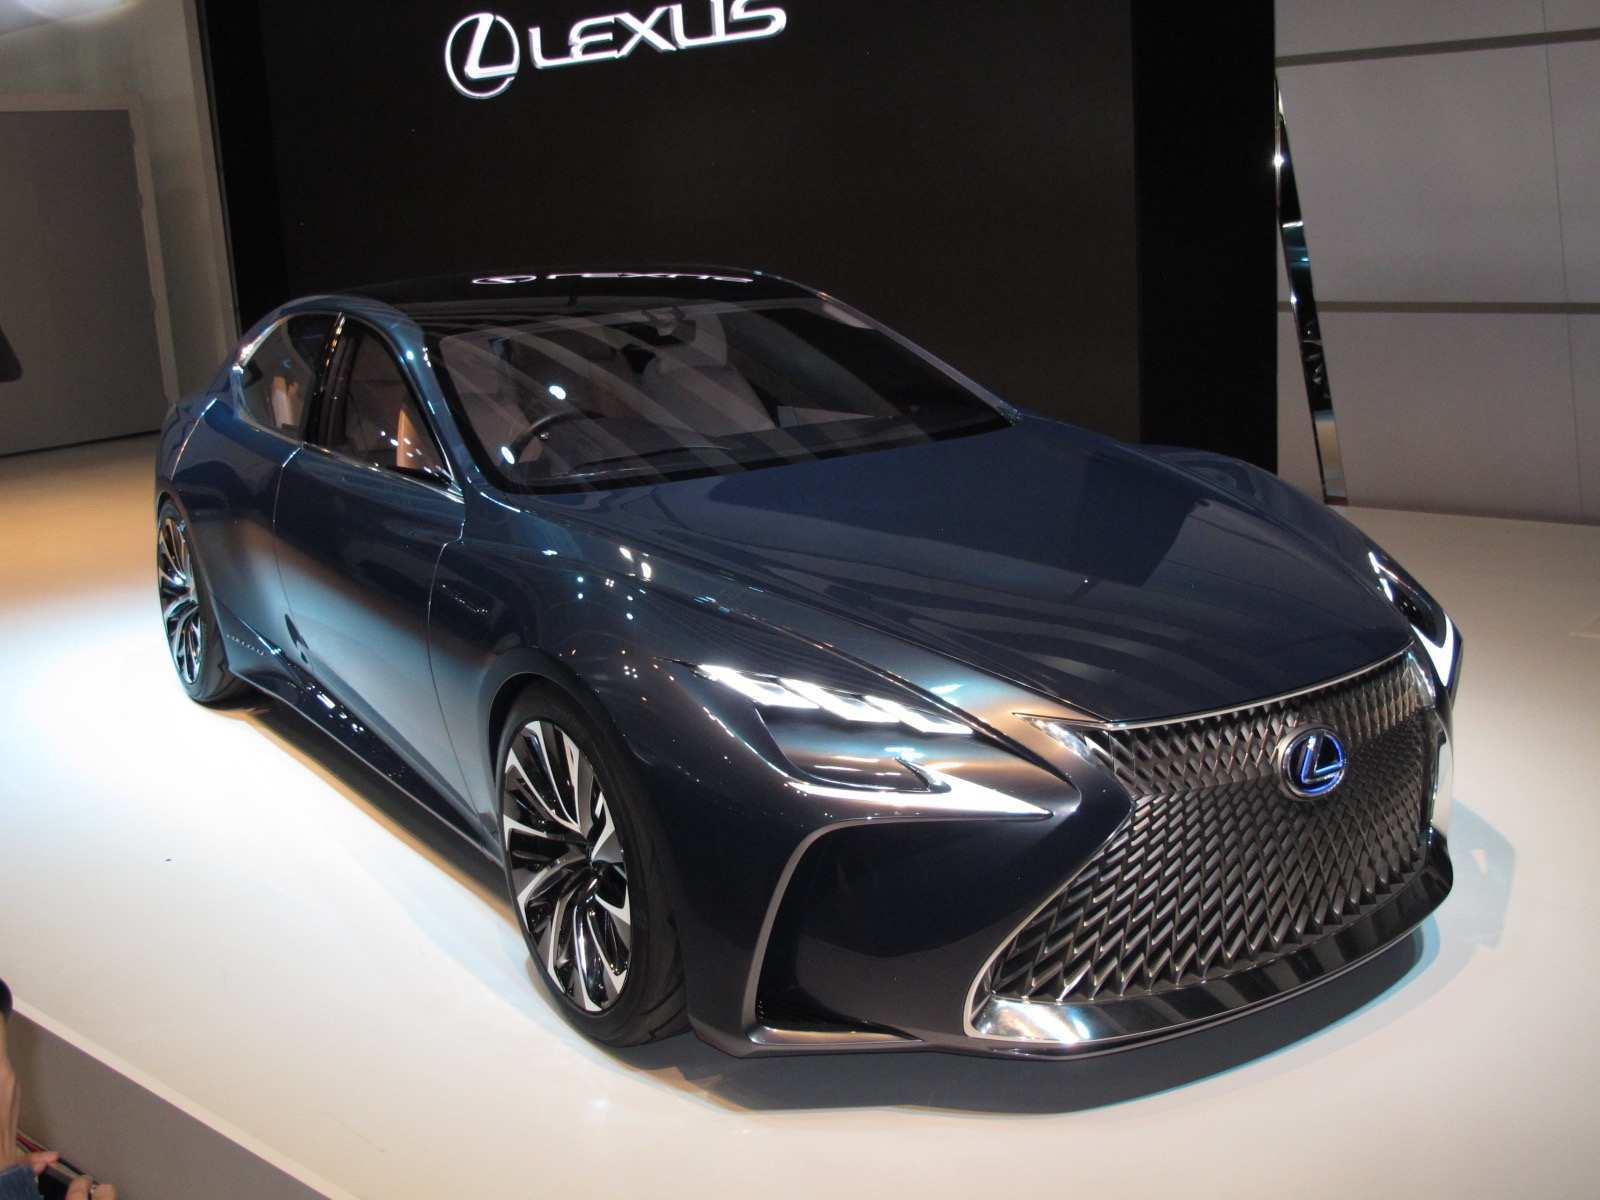 20 New Lexus News 2020 Review for Lexus News 2020